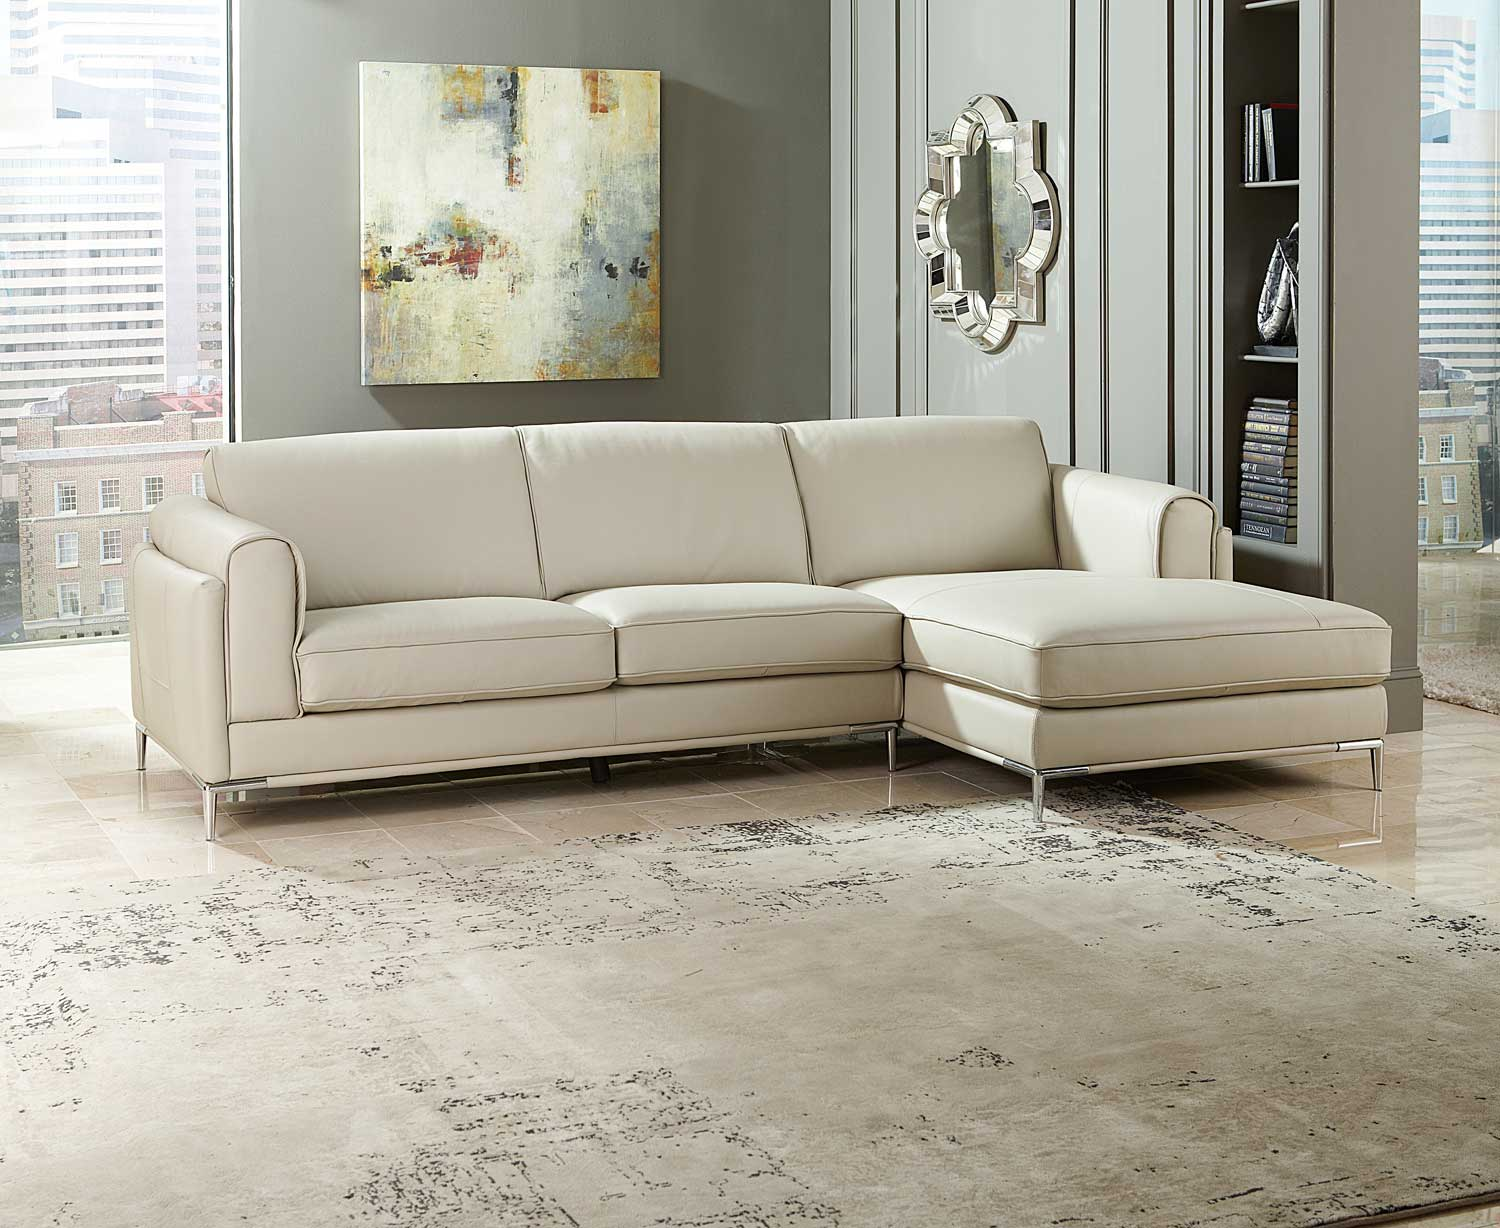 Charmant Homelegance Hugo Sectional Sofa   Beige Top Grain Leather U0026 Split Leather